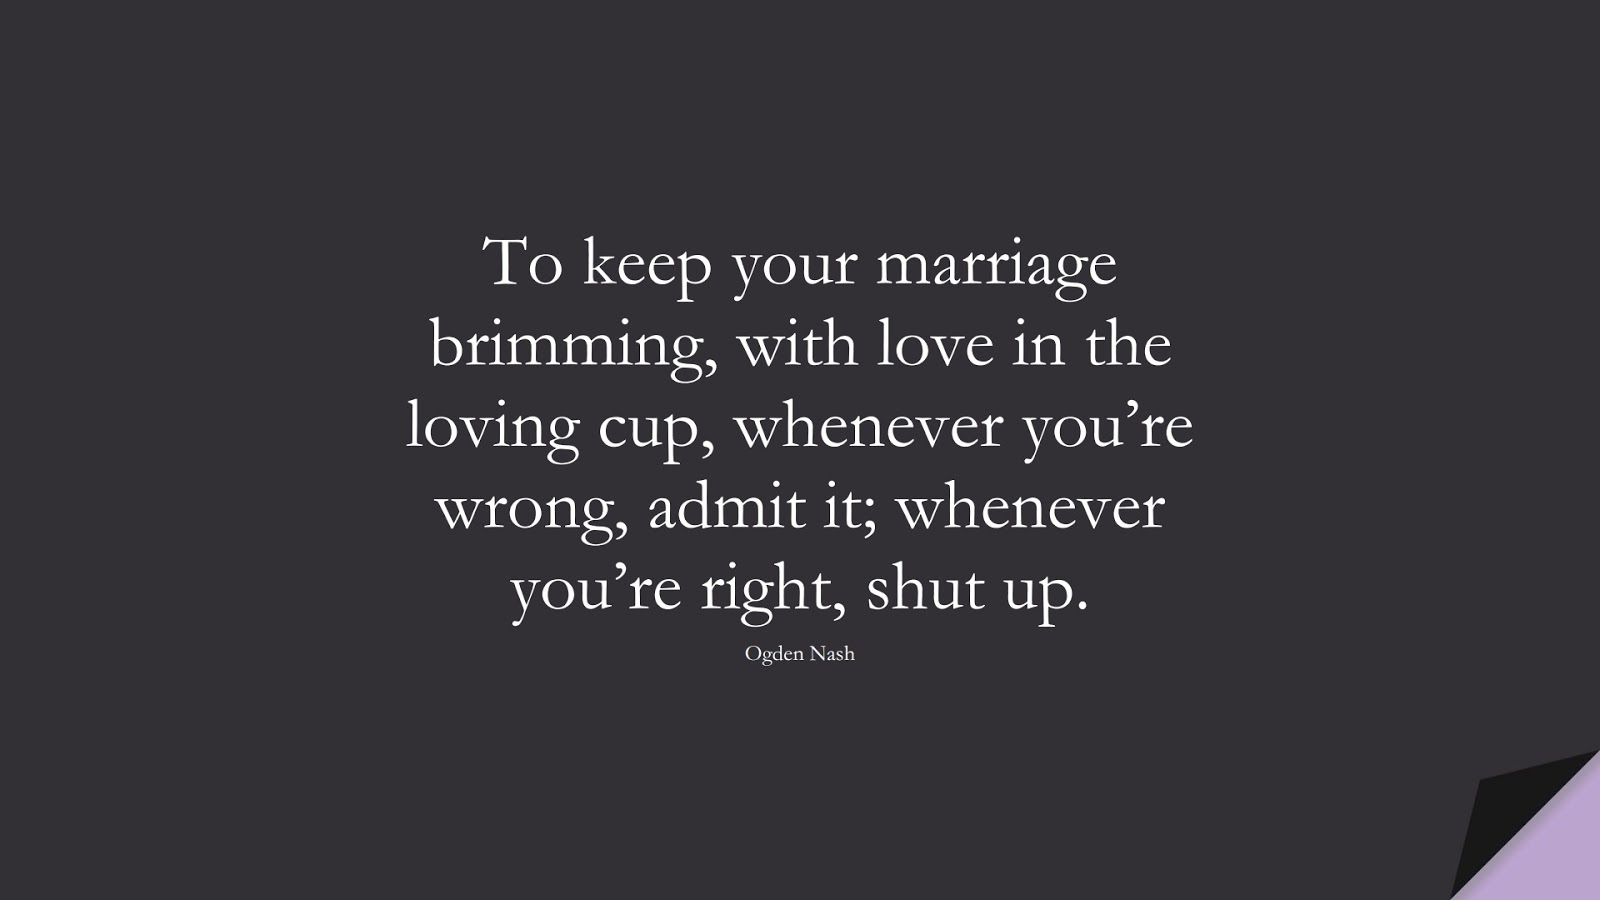 To keep your marriage brimming, with love in the loving cup, whenever you're wrong, admit it; whenever you're right, shut up. (Ogden Nash);  #RelationshipQuotes